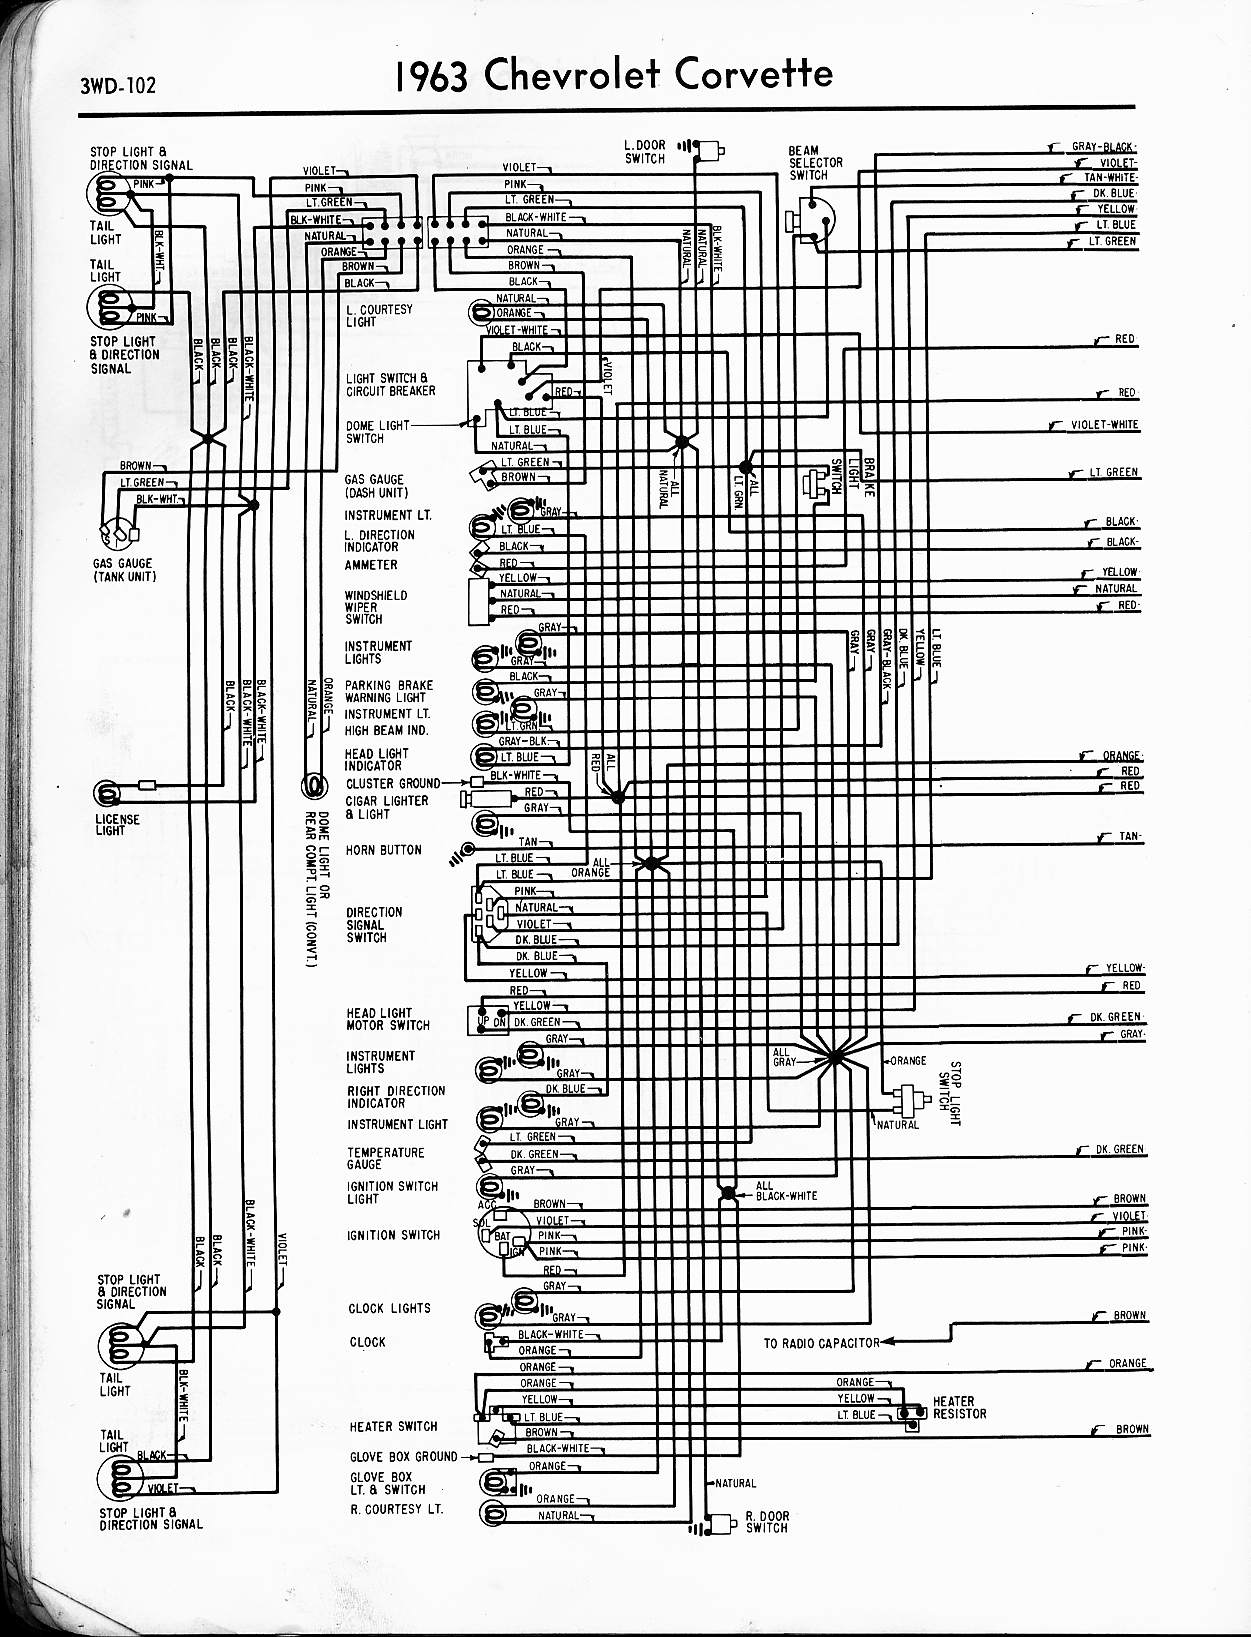 MWireChev63_3WD 102 57 65 chevy wiring diagrams 1963 corvette wiring diagram at gsmx.co